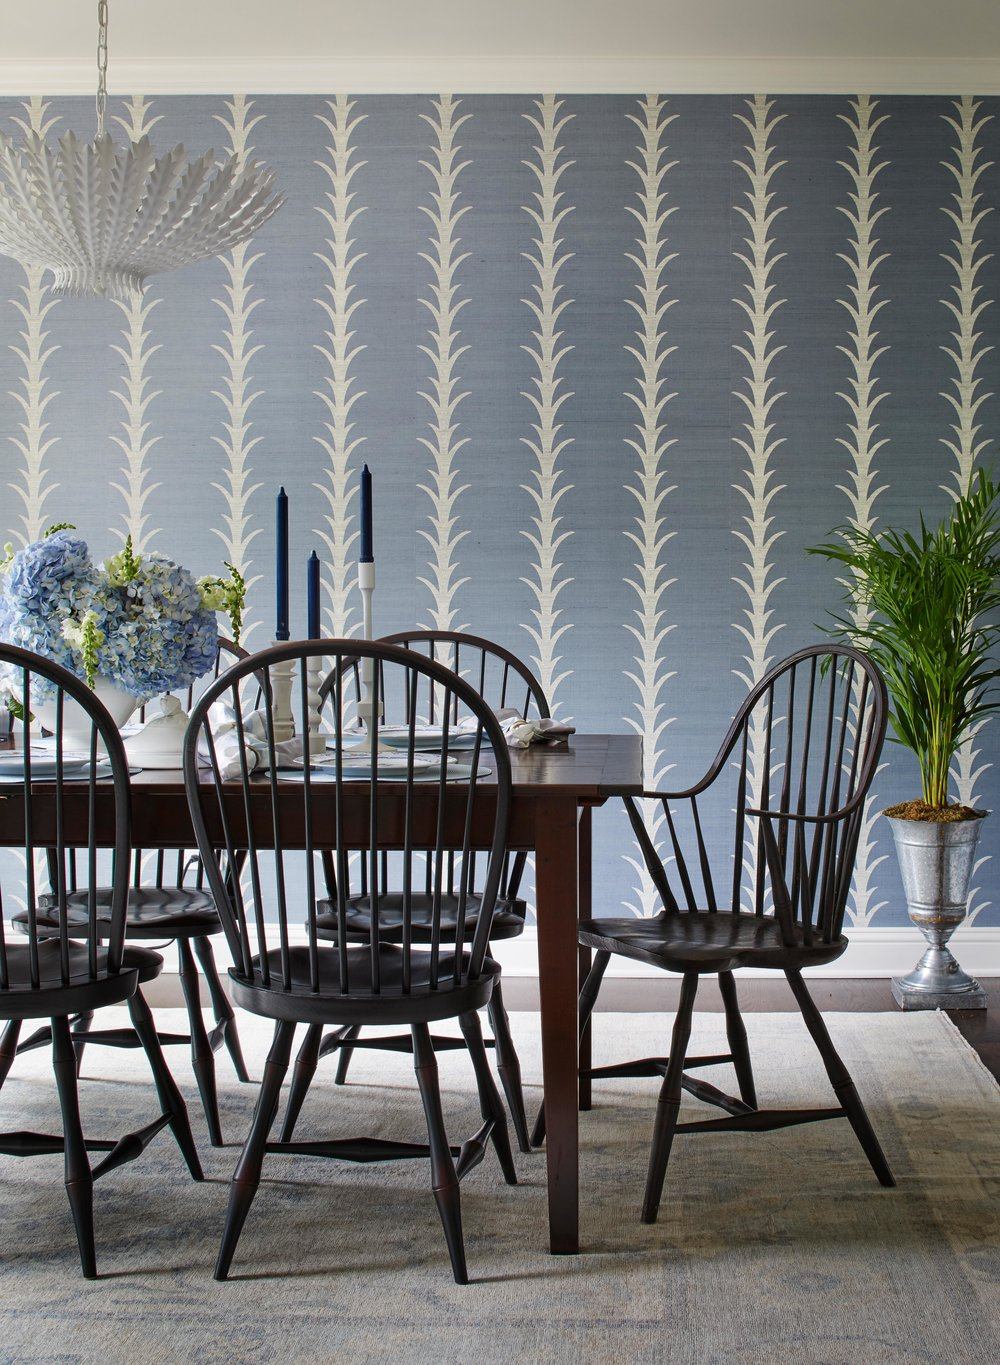 Acanthus motif and blue wallpaper in a classic dining room. Come see more interior design inspiration from Elizabeth Drake. Photo by Werner Straube. #interiordesign #classicdesign #traditionaldecor #housetour #elizabethdrake